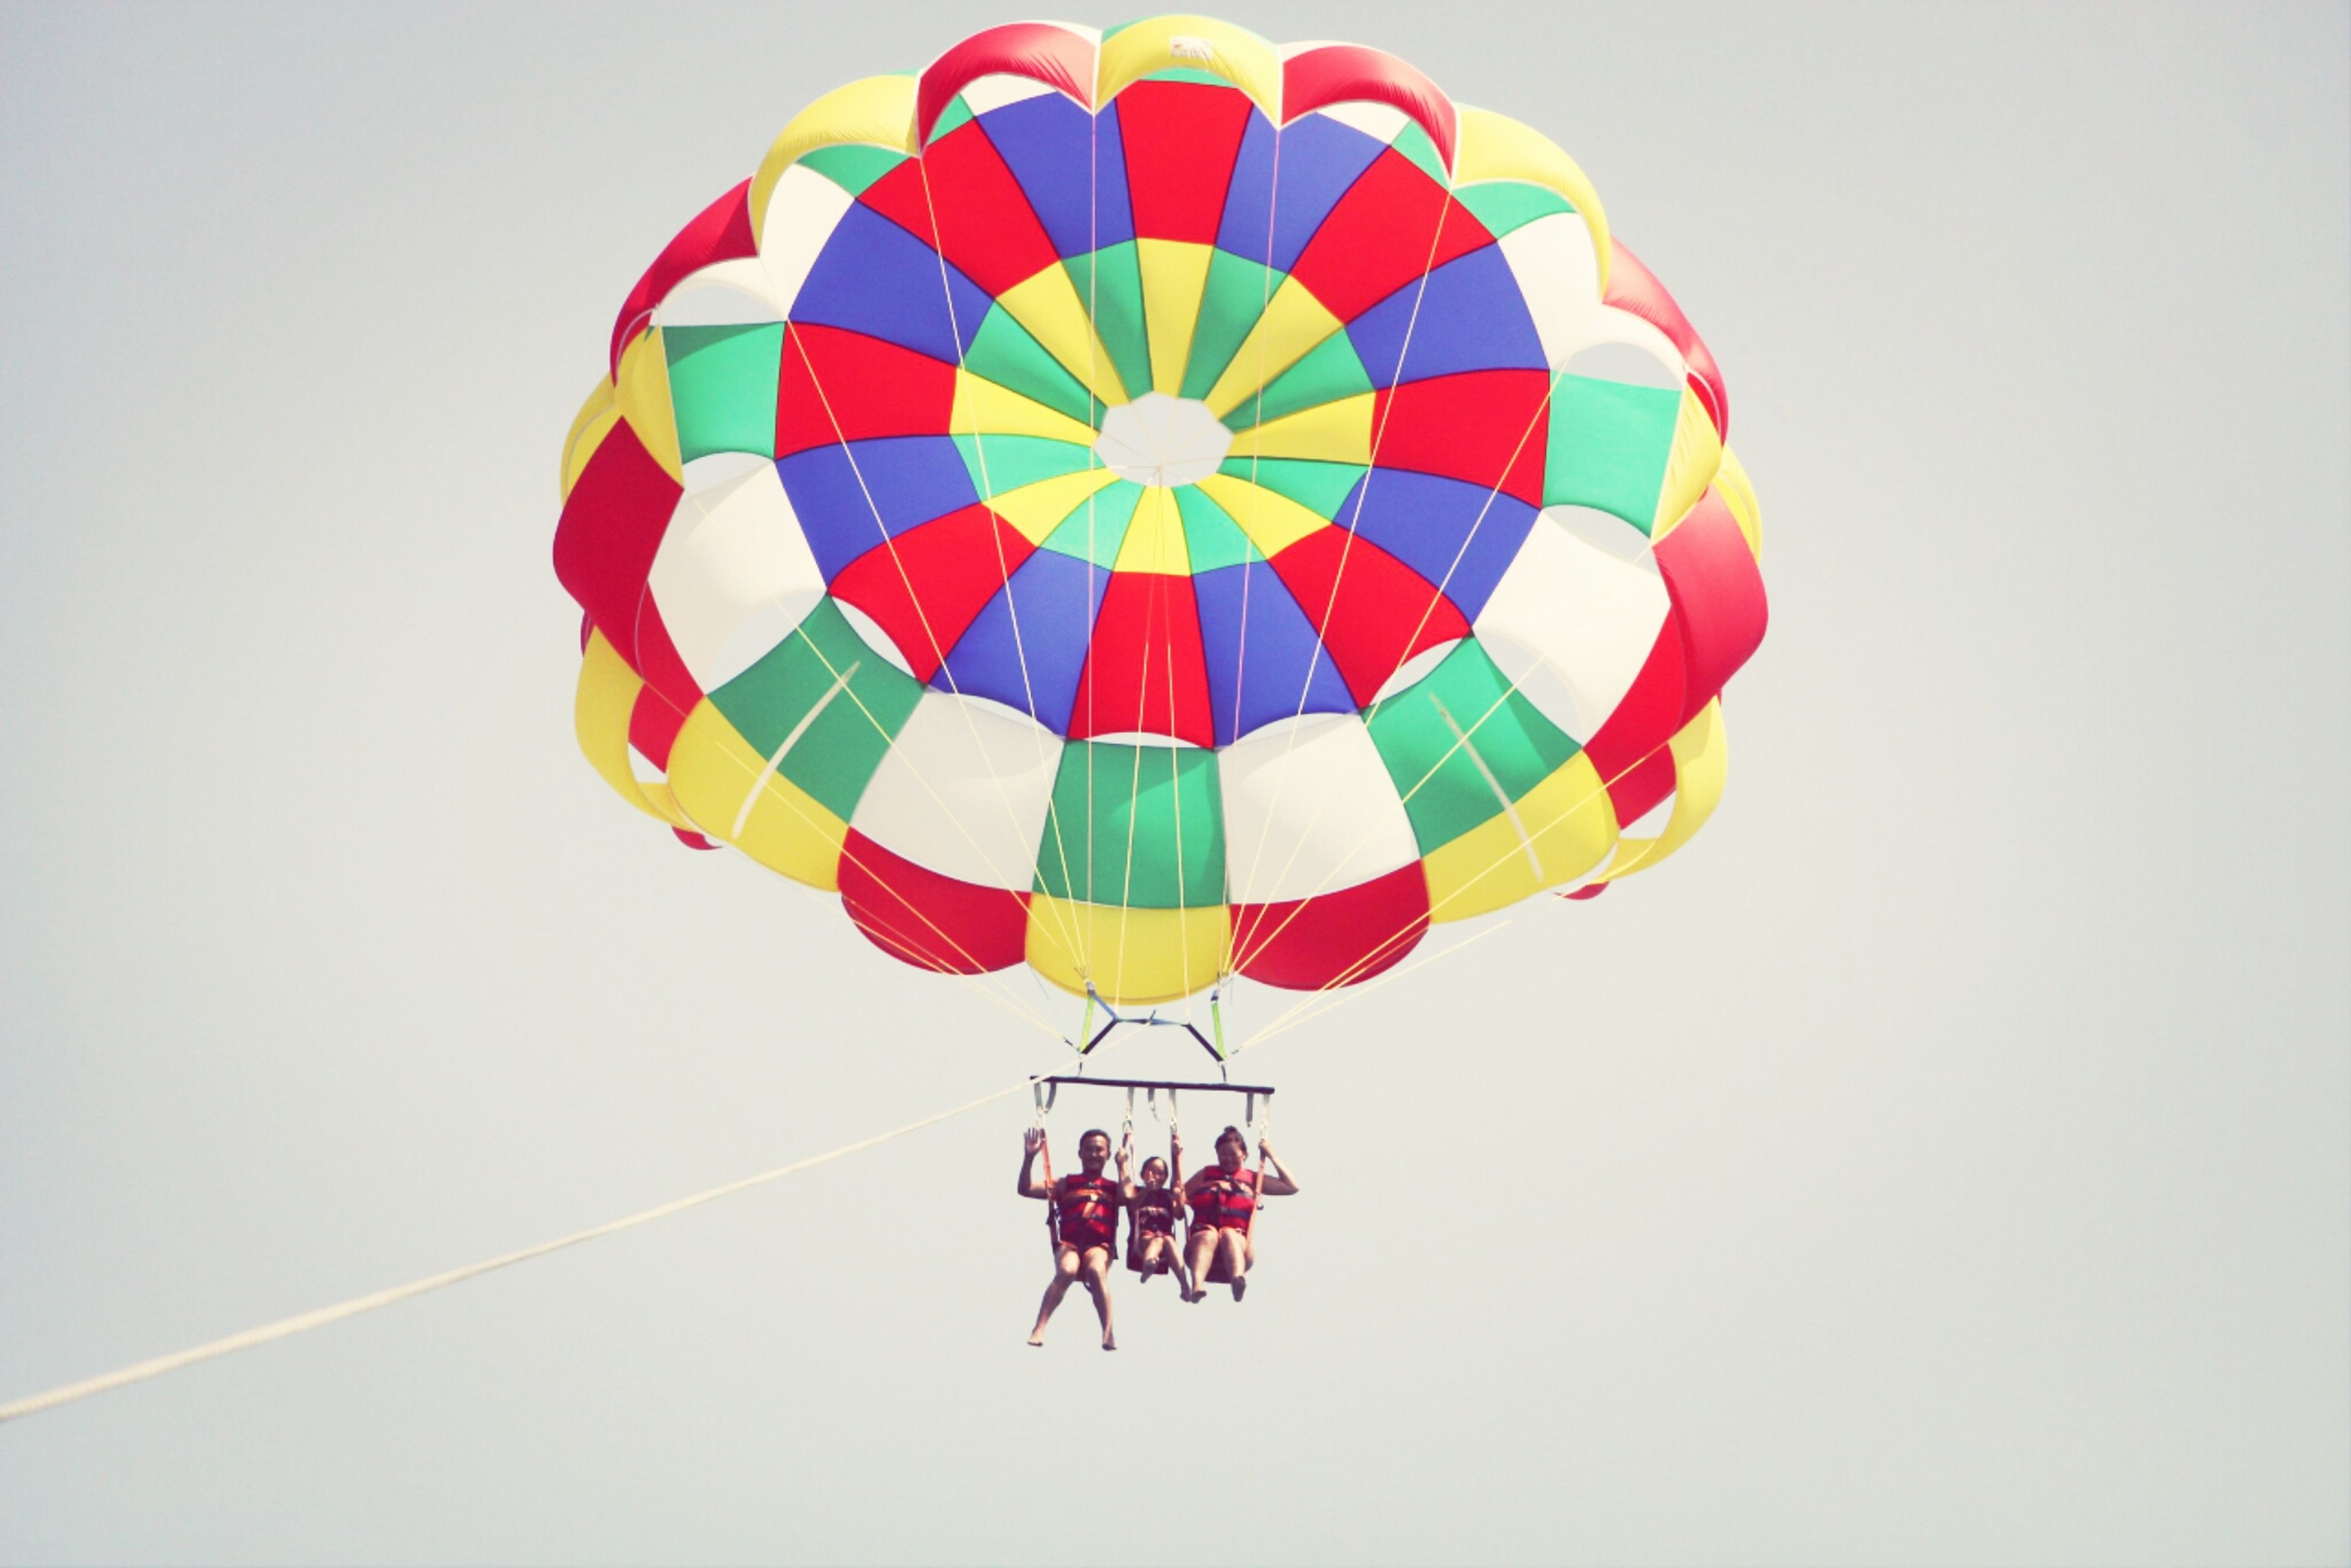 multi colored, low angle view, hot air balloon, mid-air, copy space, colorful, art, art and craft, flying, clear sky, creativity, decoration, pattern, balloon, celebration, parachute, hanging, no people, umbrella, shape